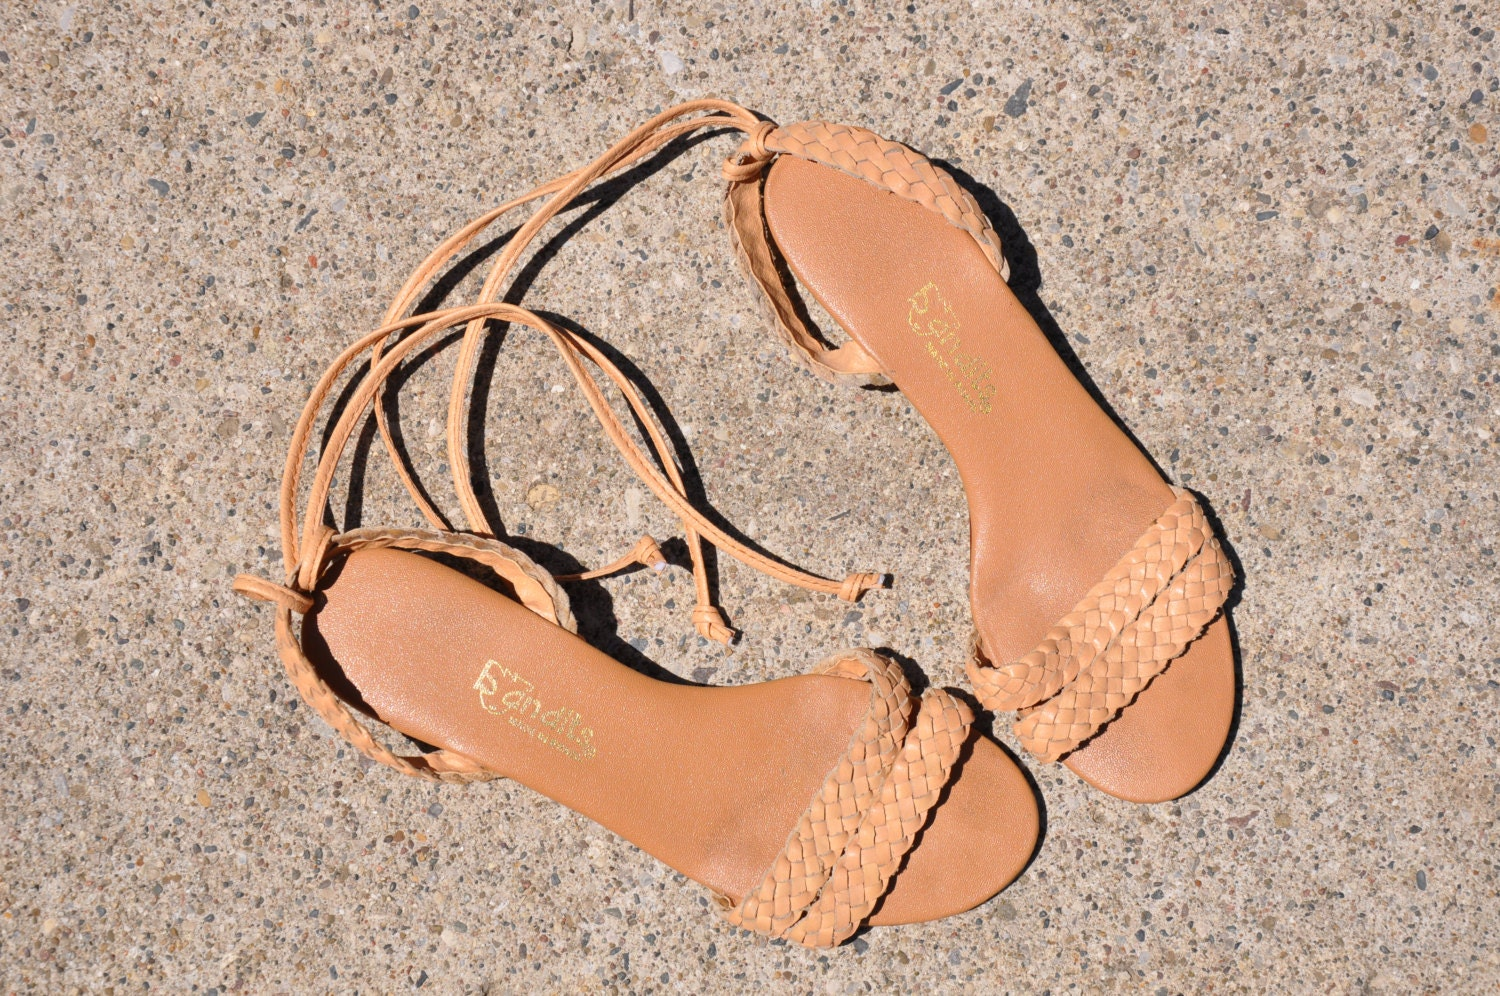 70s braided leather wedge sandals / vintage tan leather strappy wedges / Bandits sandals - QuietUnrest